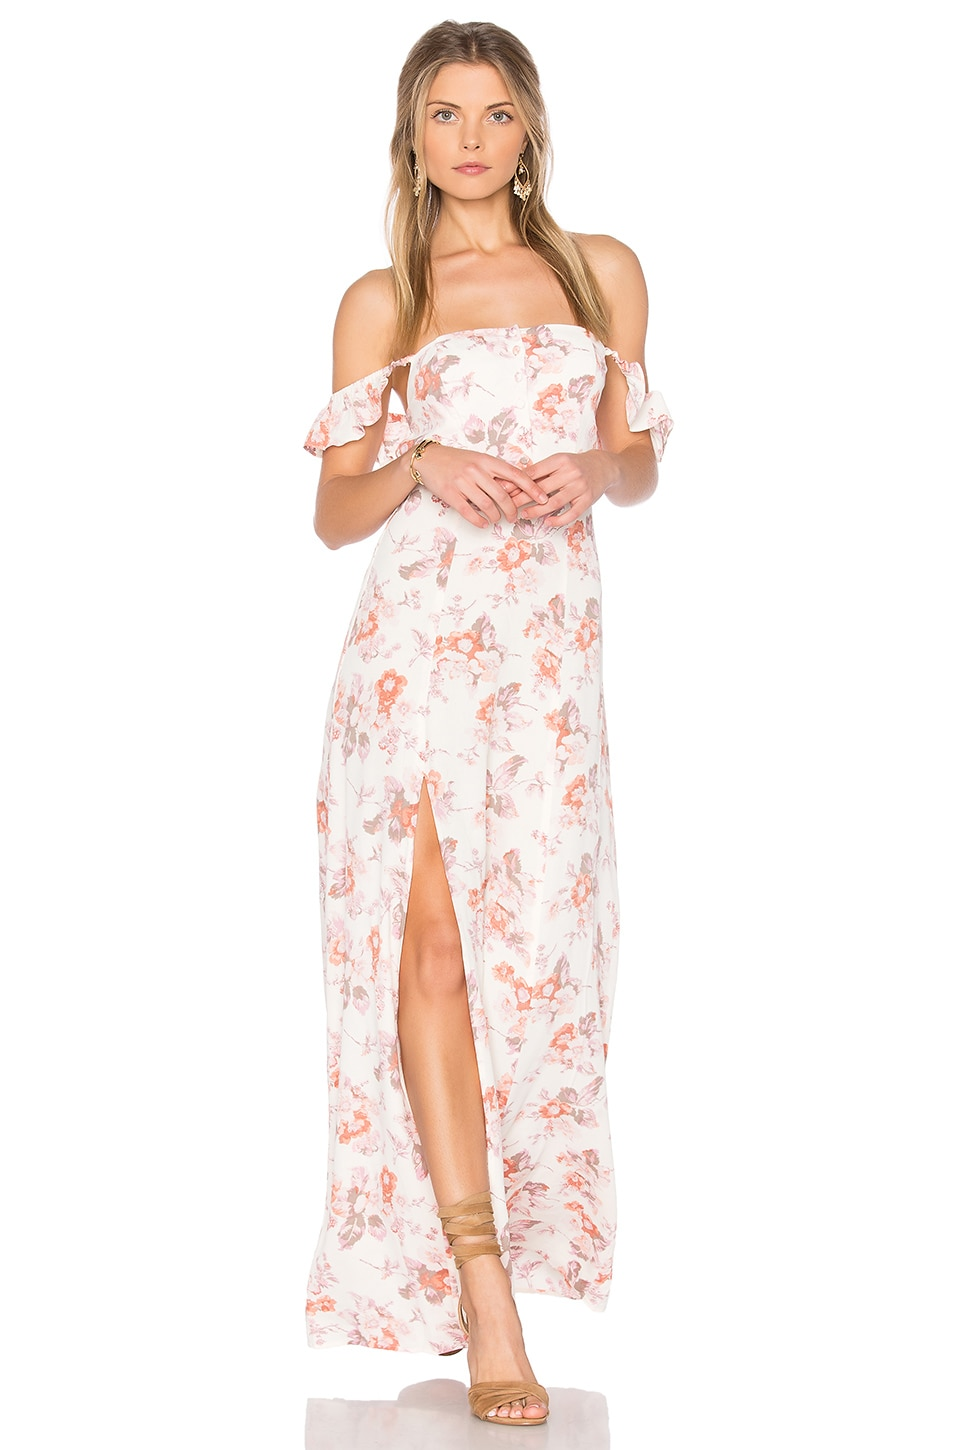 FLYNN SKYE Bardot Maxi Dress in Cream Blossom